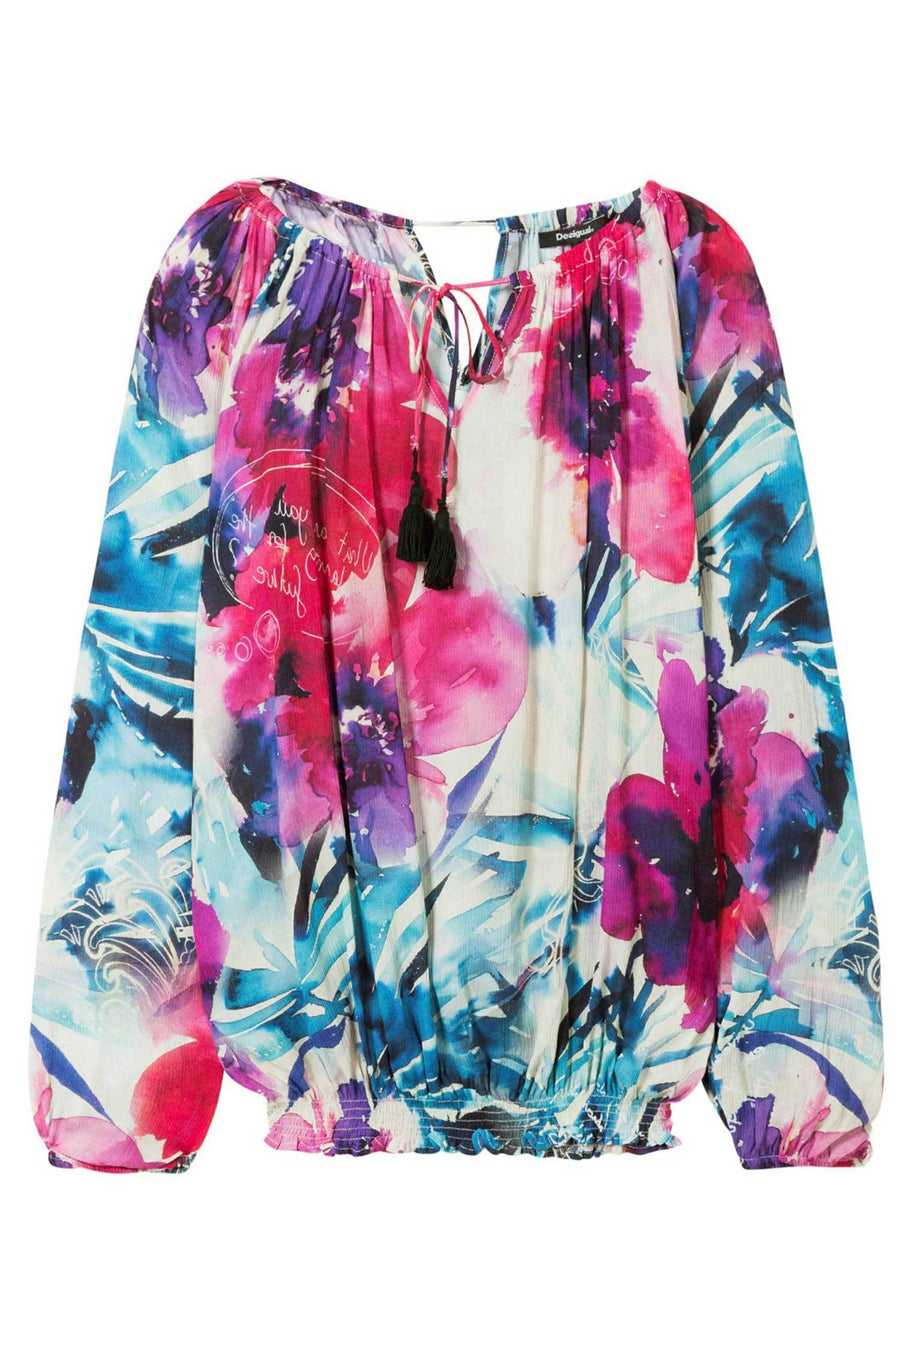 Shop Online Zazil Top by Desigual  Frockaholics Tops